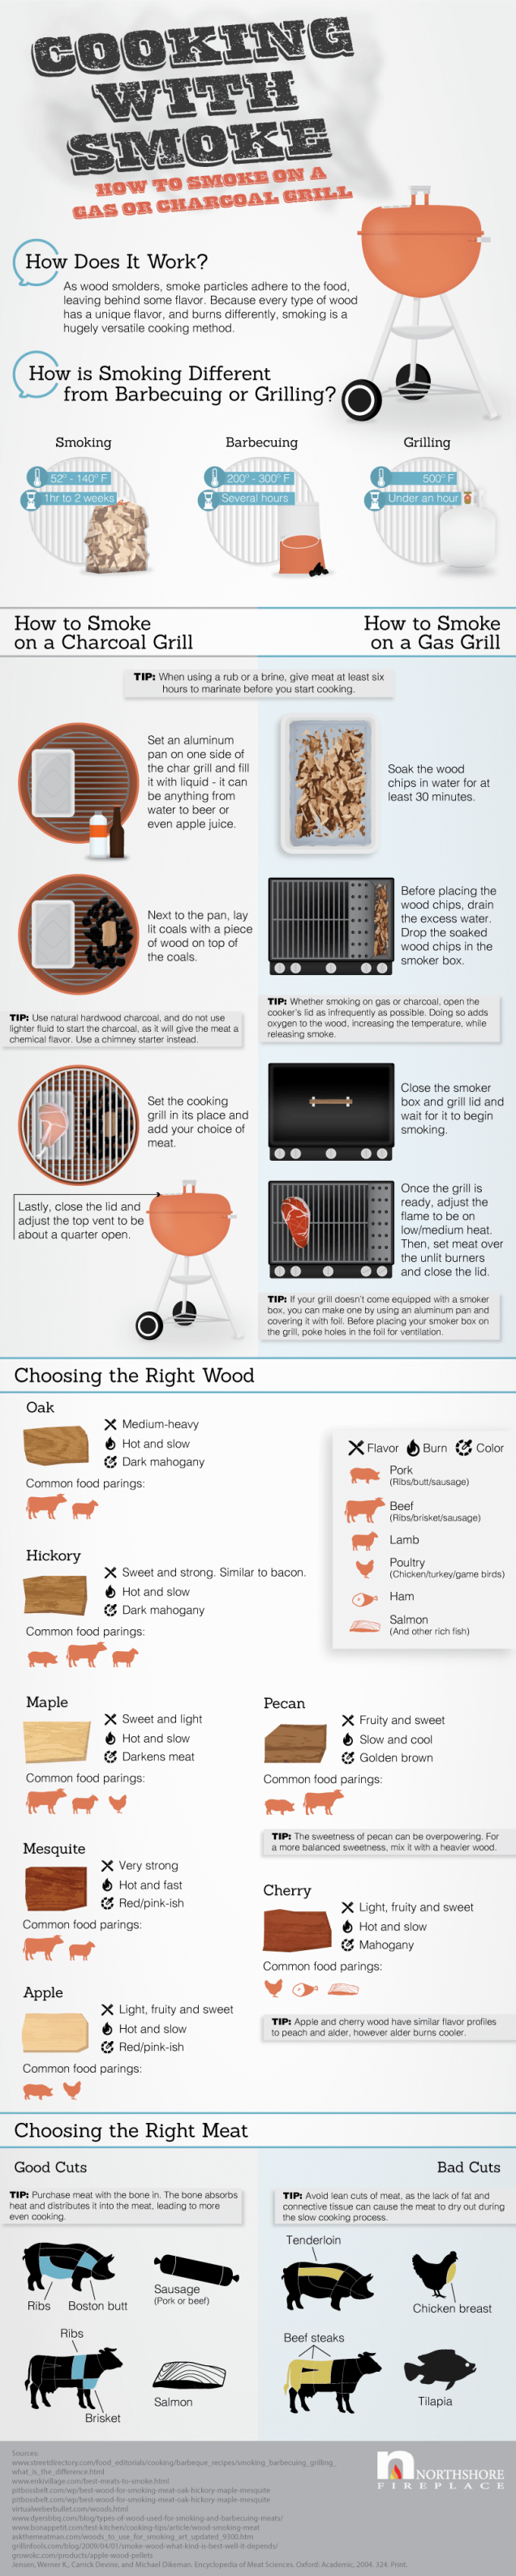 how-to-smoke-meats-on-a-gas-or-charcoal-grill-infographic